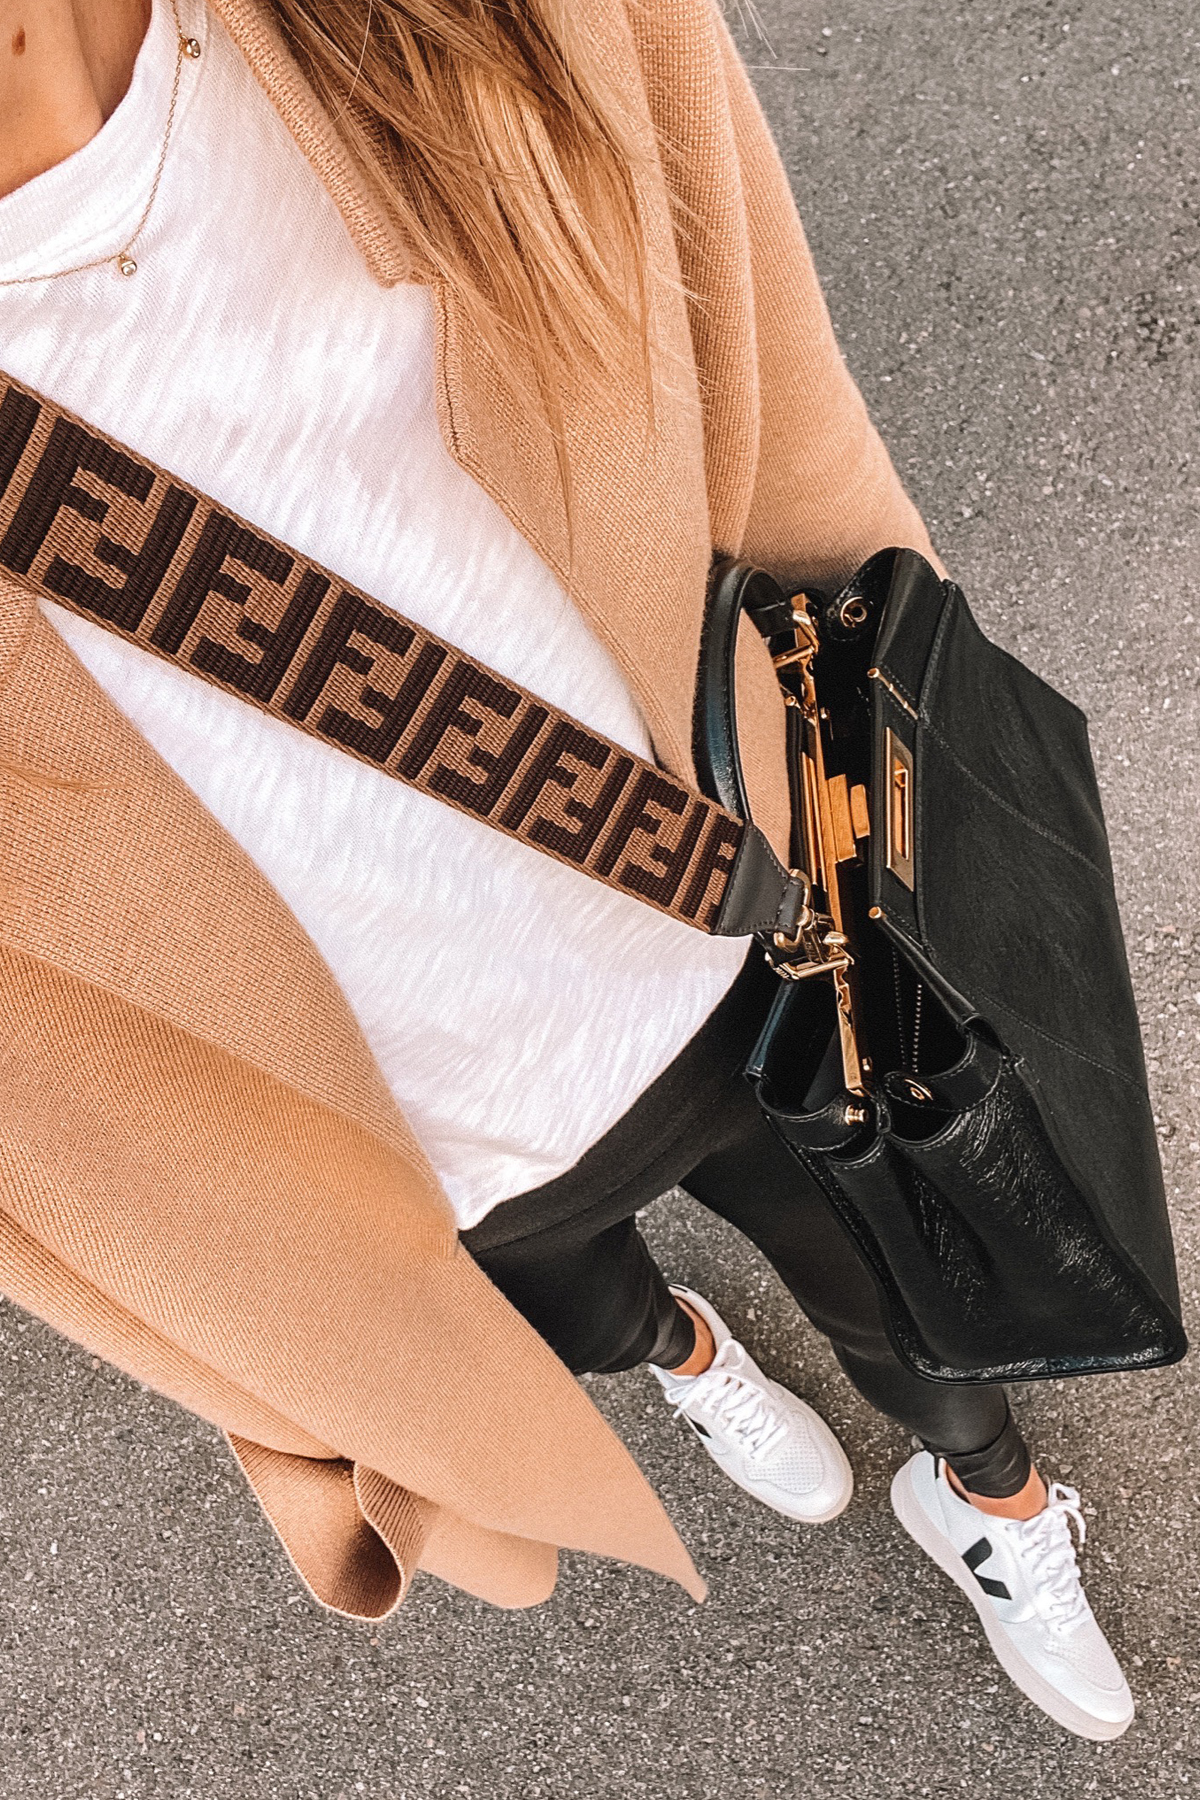 Fashion Jackson Wearing Camel Cardigan White Tshirt Black Leggings Veja Sneakers Fendi Handbag